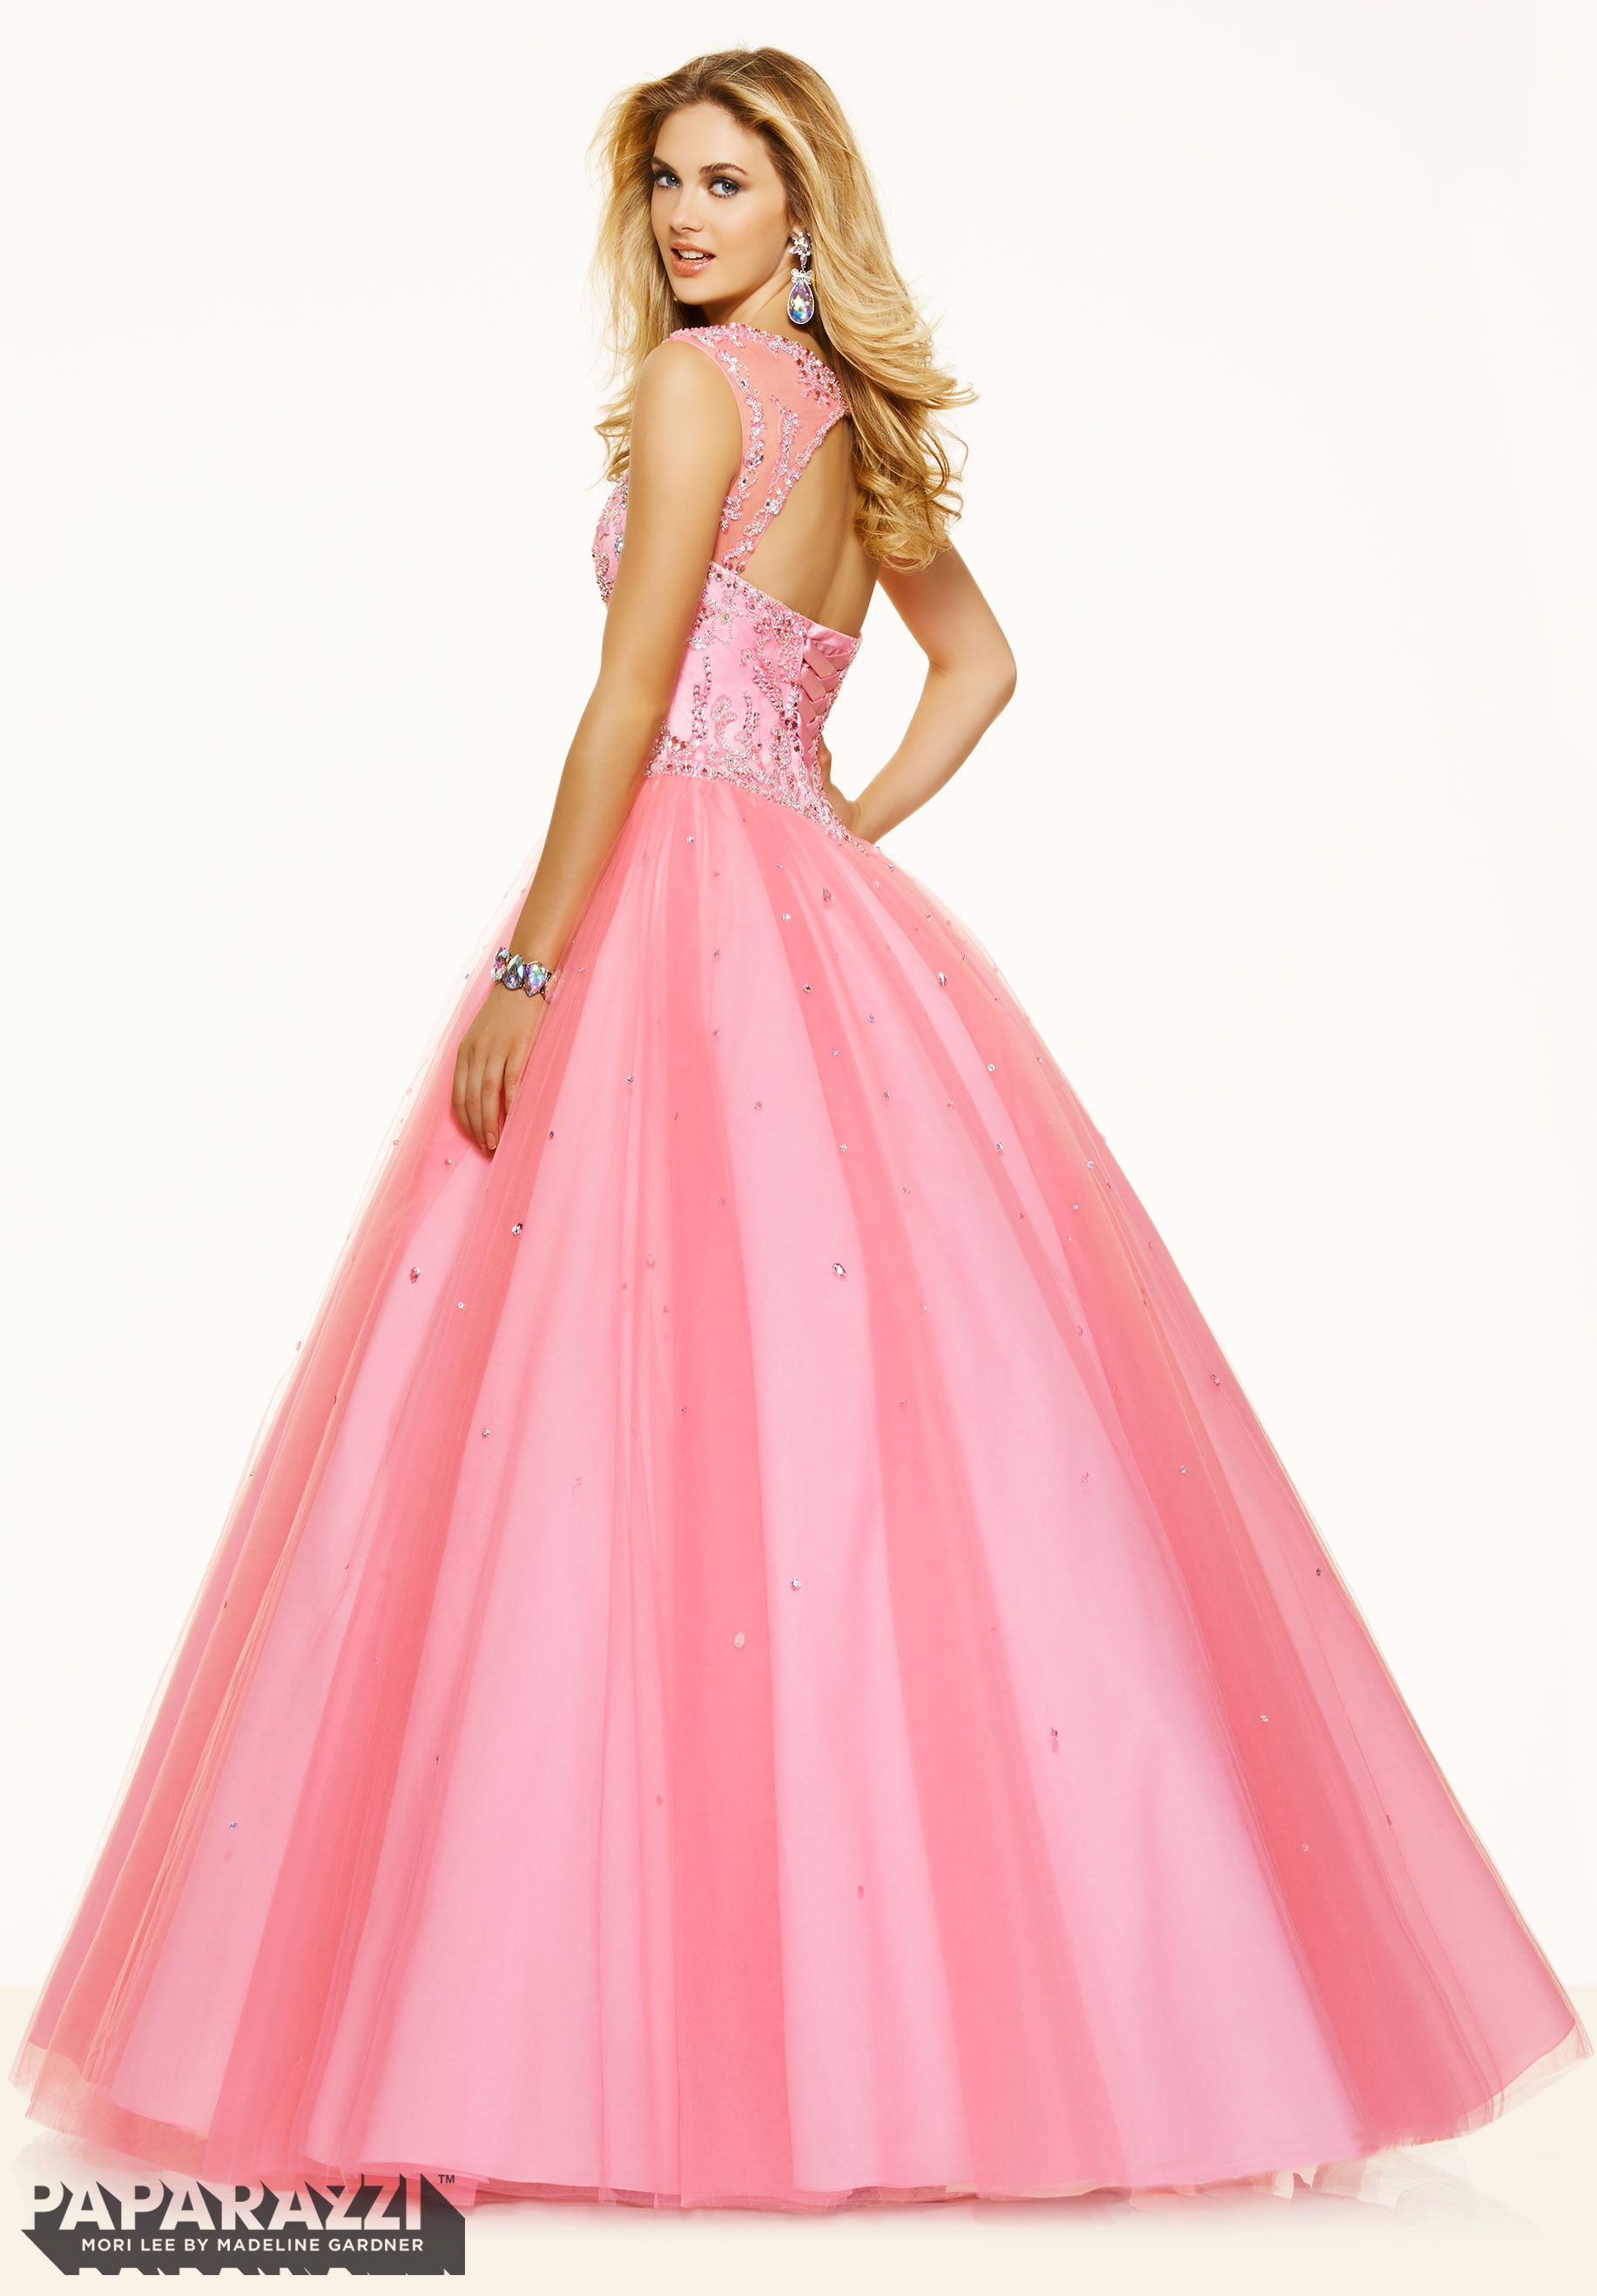 Prom Dresses by Paparazzi Prom - Dress Style 98063 | PROM | Pinterest